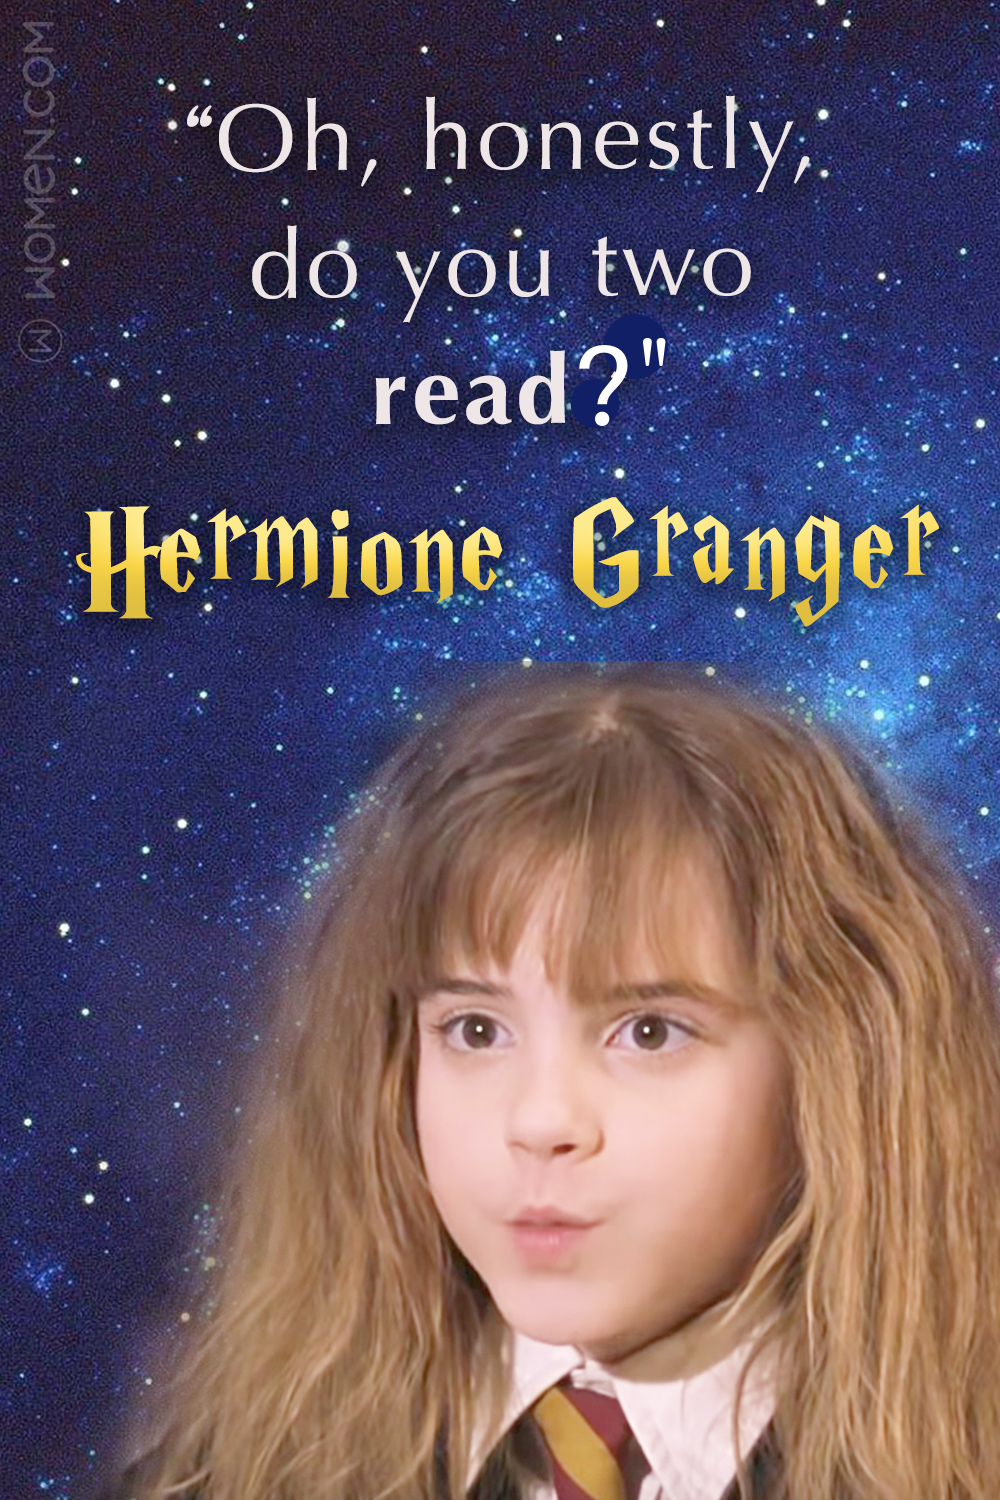 harry potter, hermione granger quote